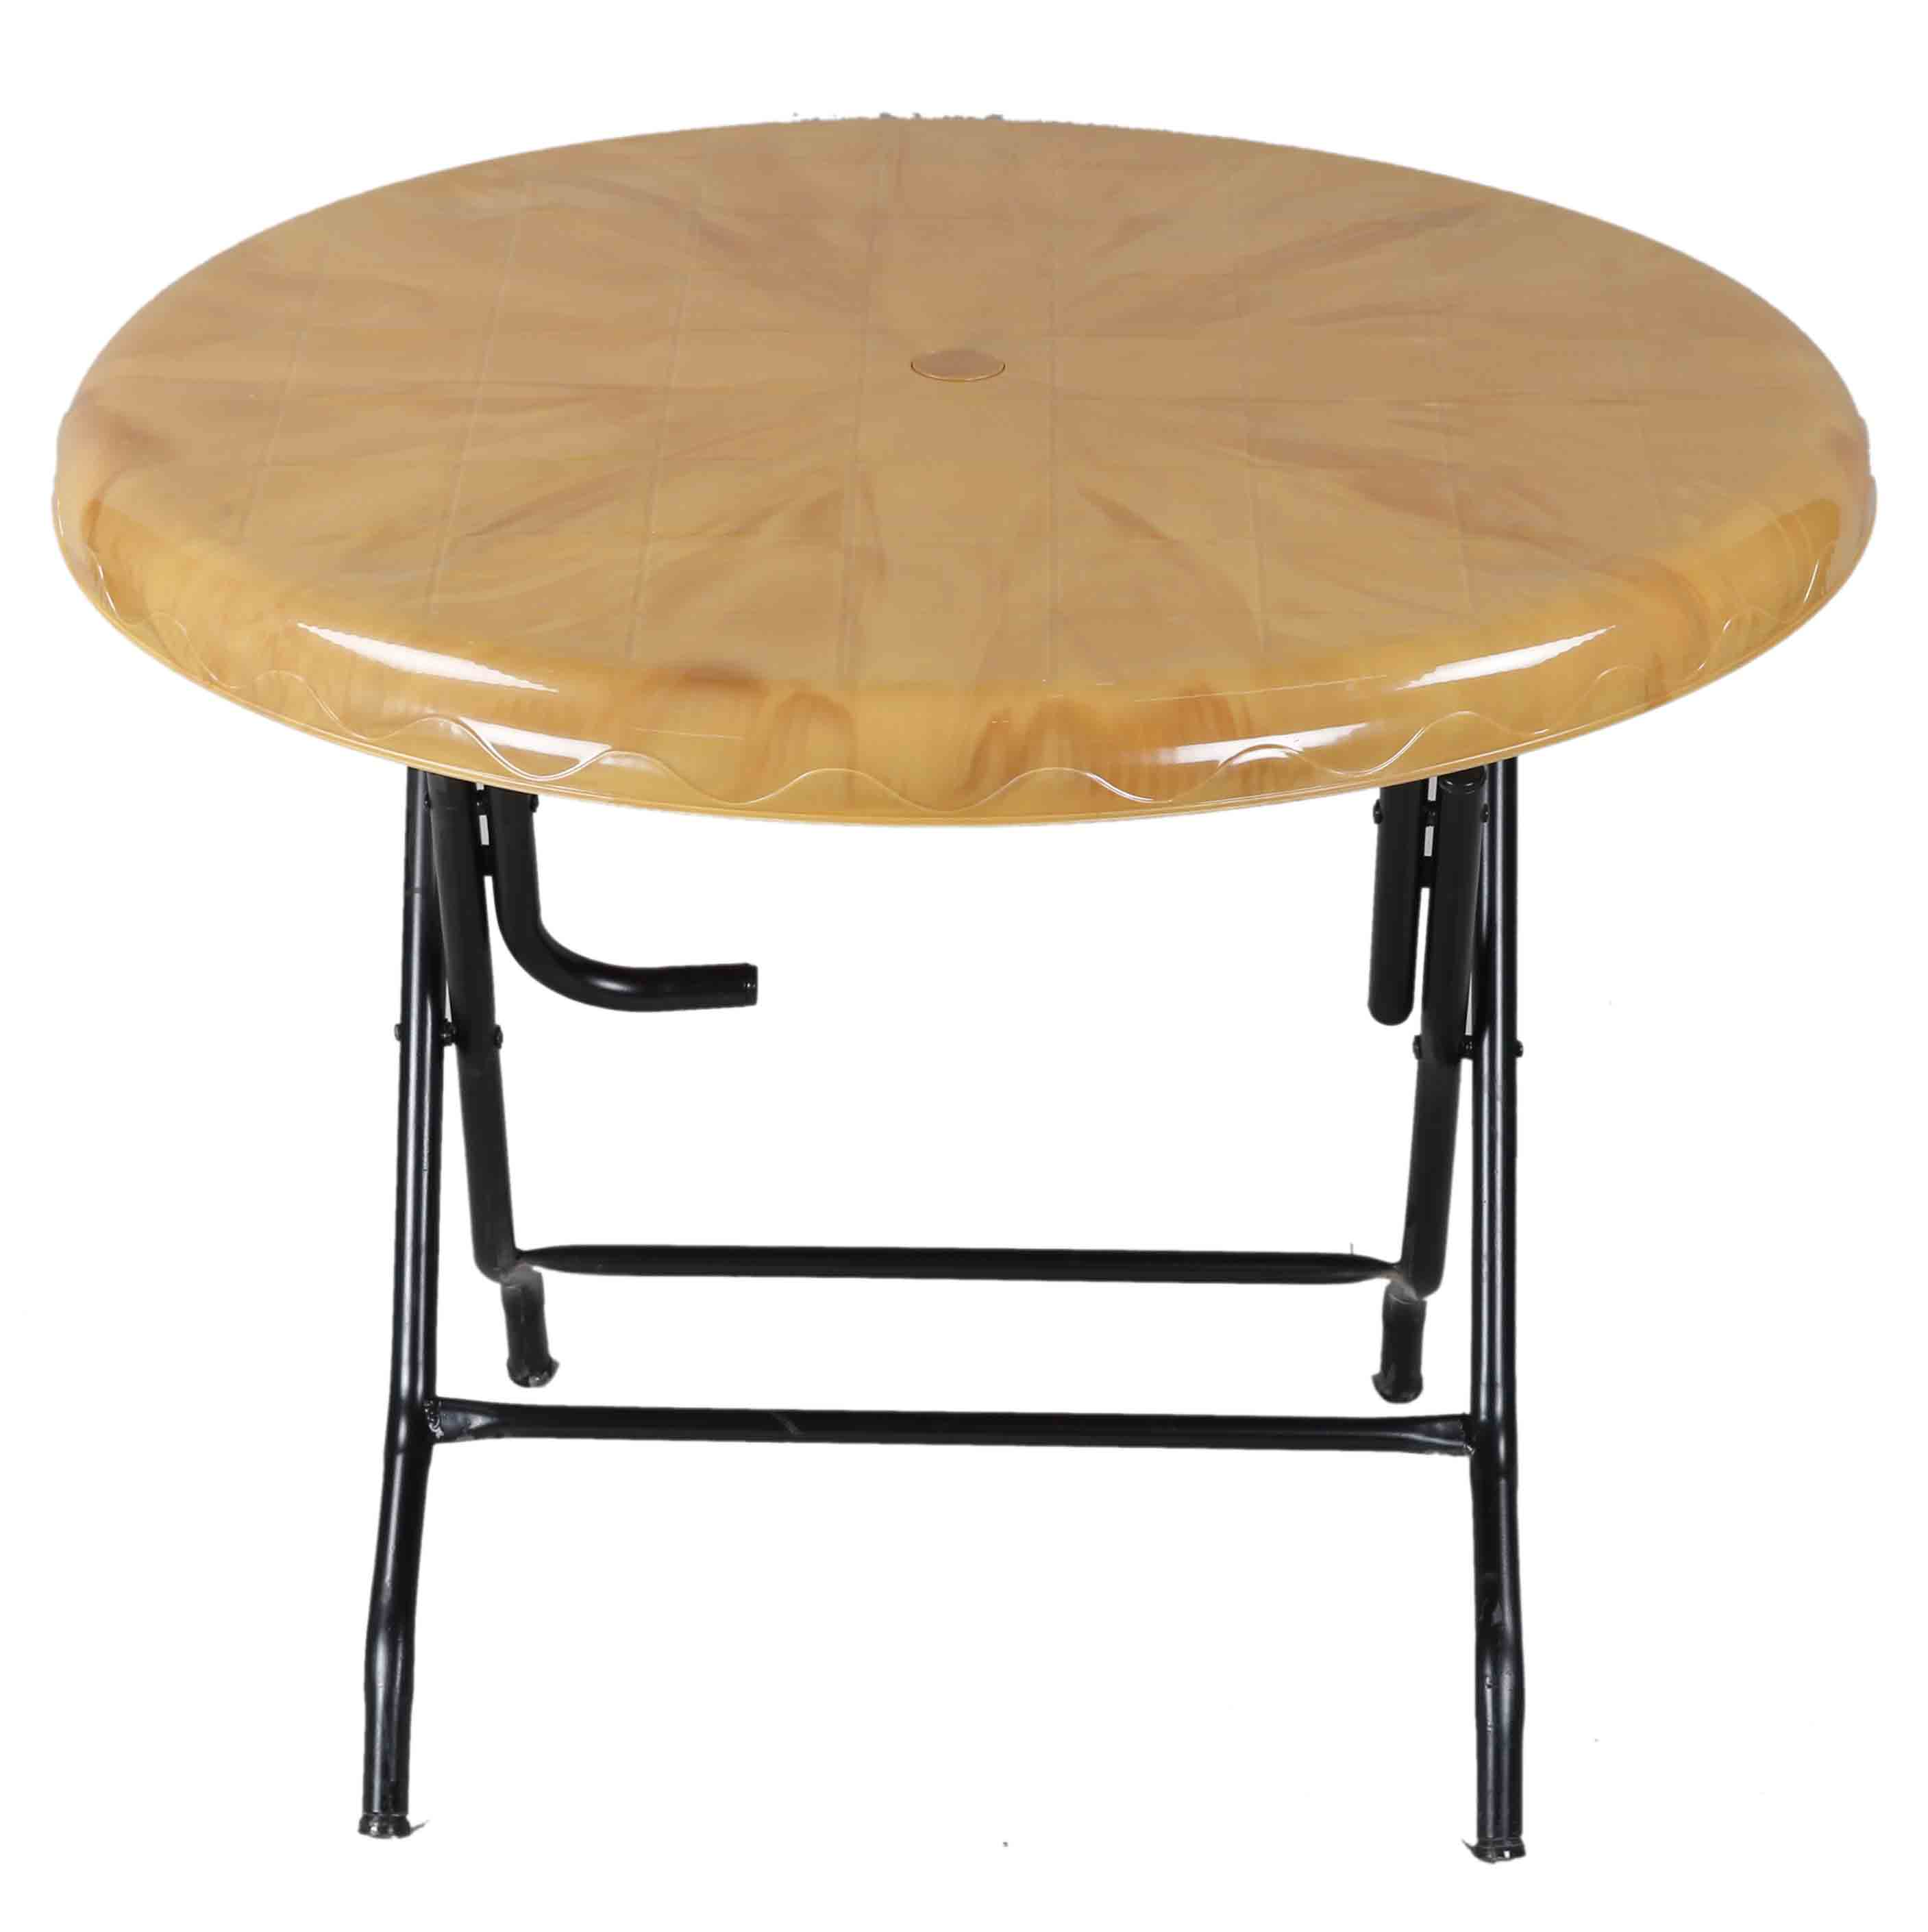 Dining Table 4 Seat Ro St/Leg-S.Wood